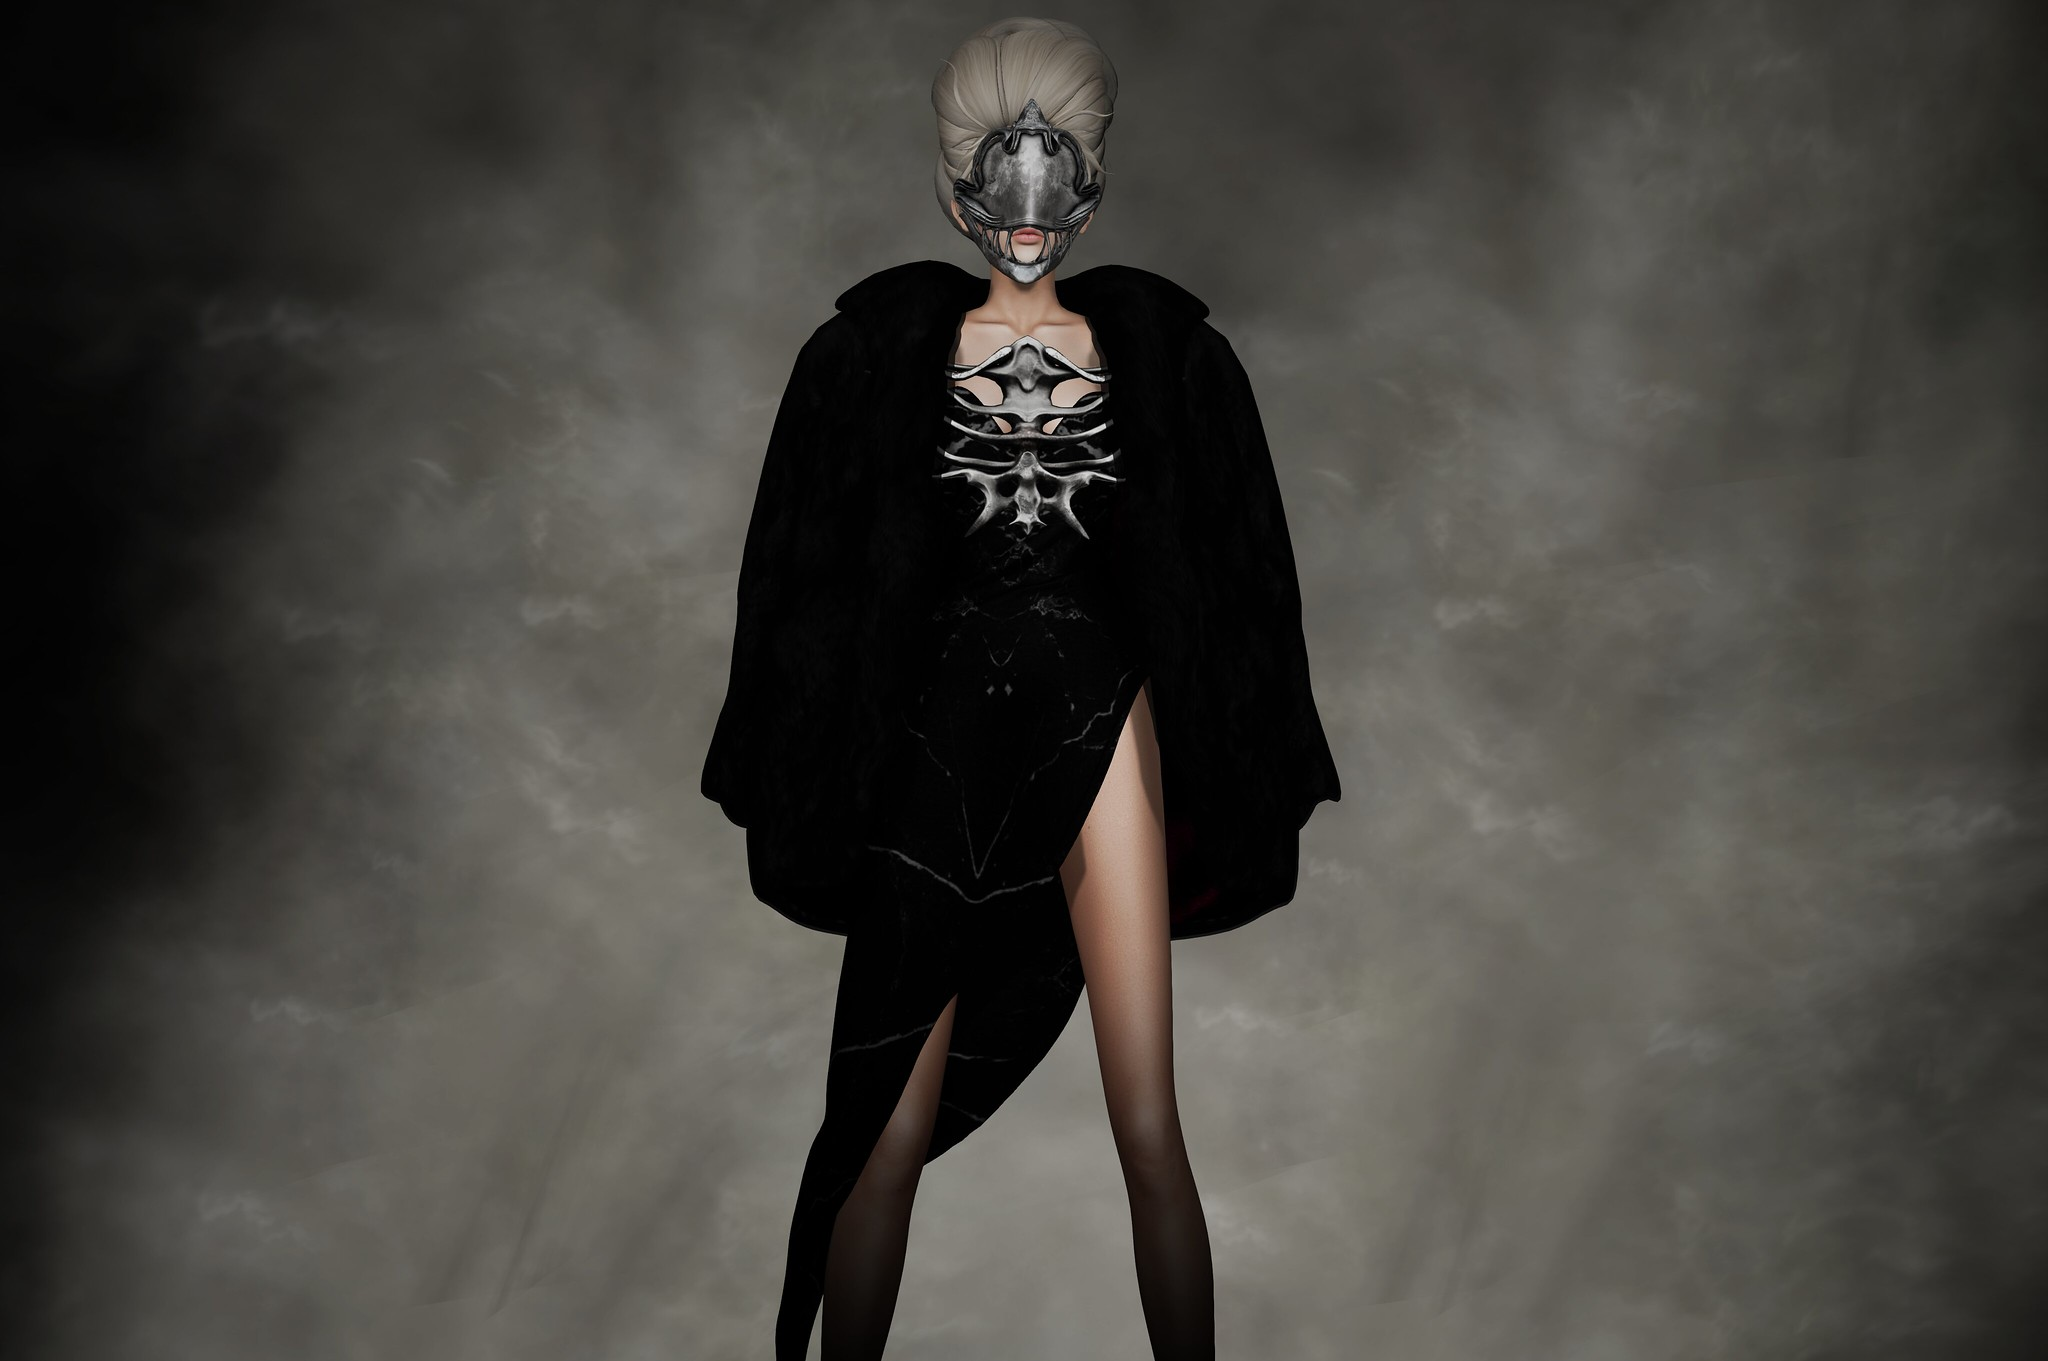 249. | The Fame Monster